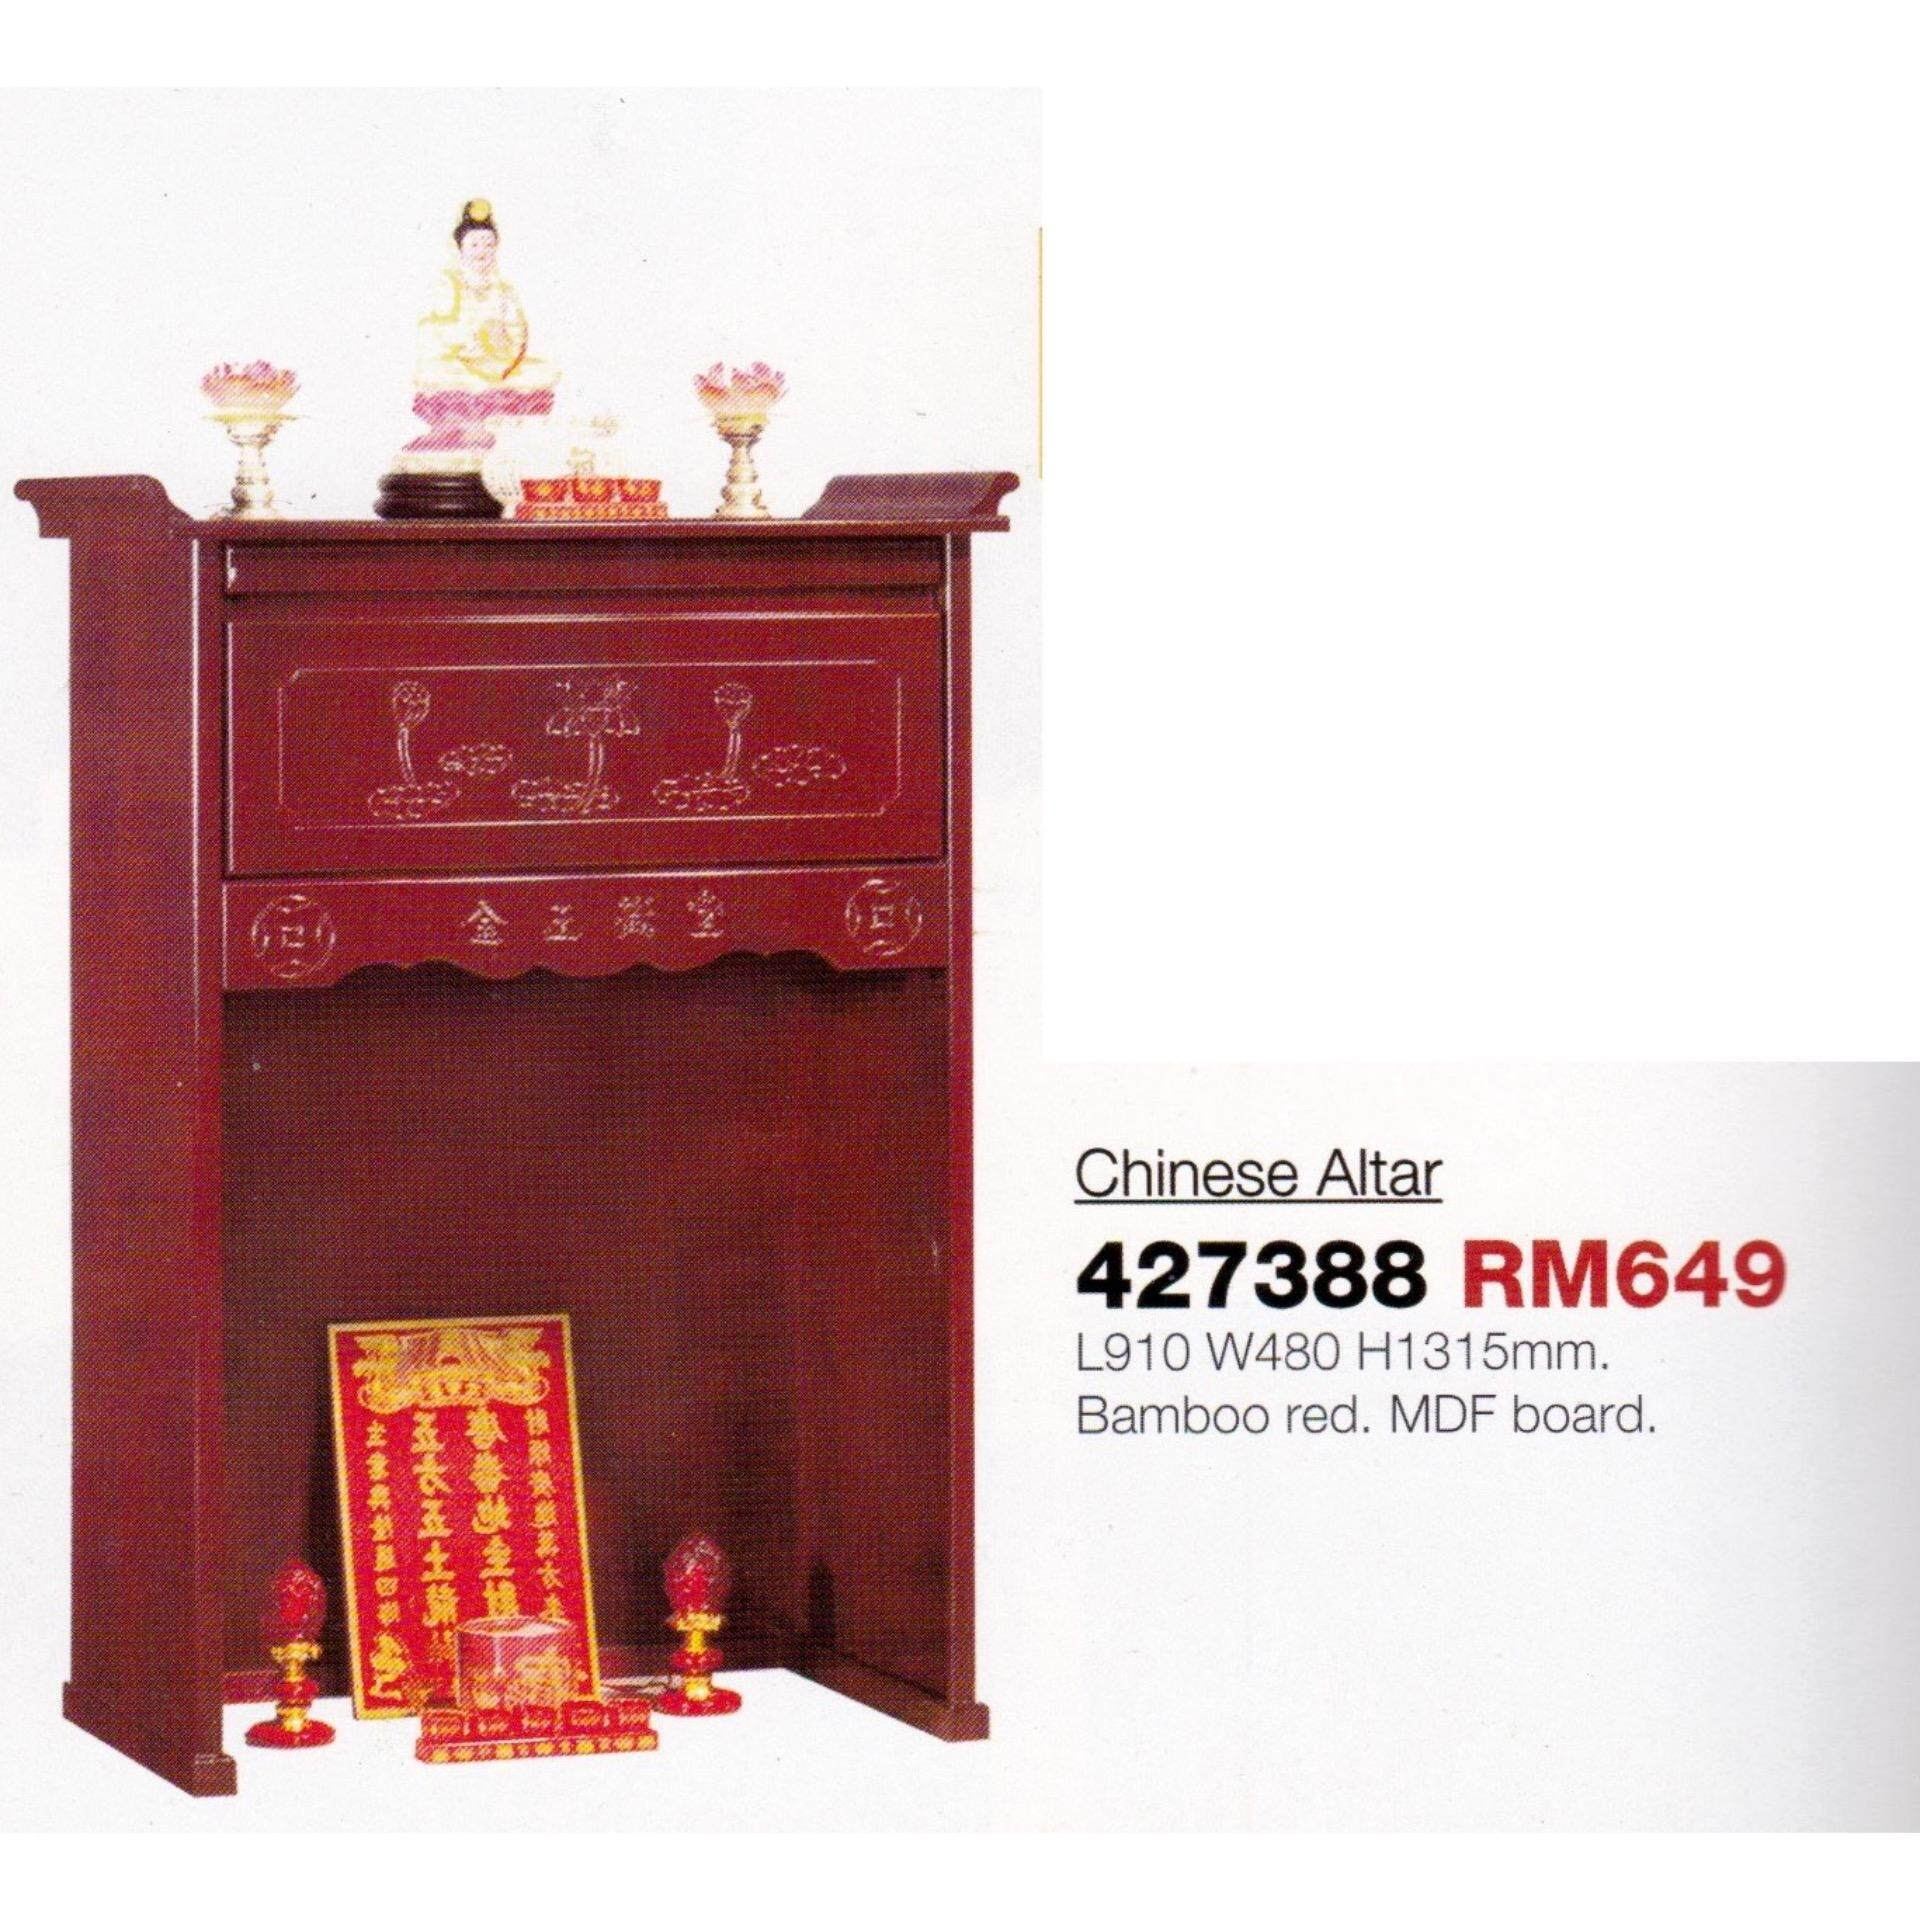 Ready-Fixed 3 Feet Feng Shui Chinese Altar Prayers Cabinet (Bamboo Red)